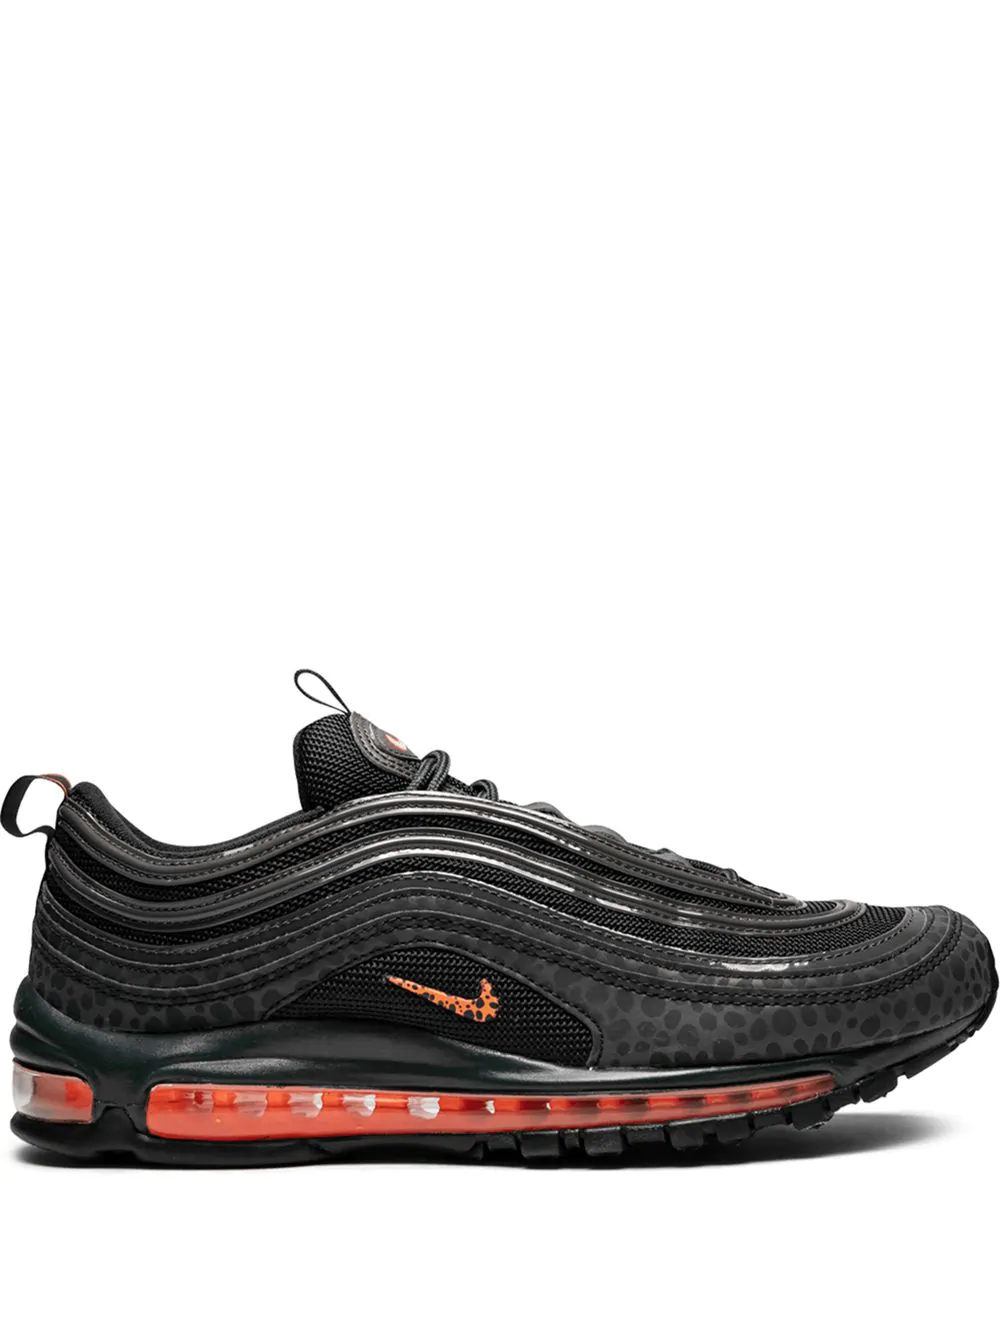 premium selection 5ec6a a3042 Nike Air Max 97 Se Reflective Sneakers - Black In Off Noir Total Orange